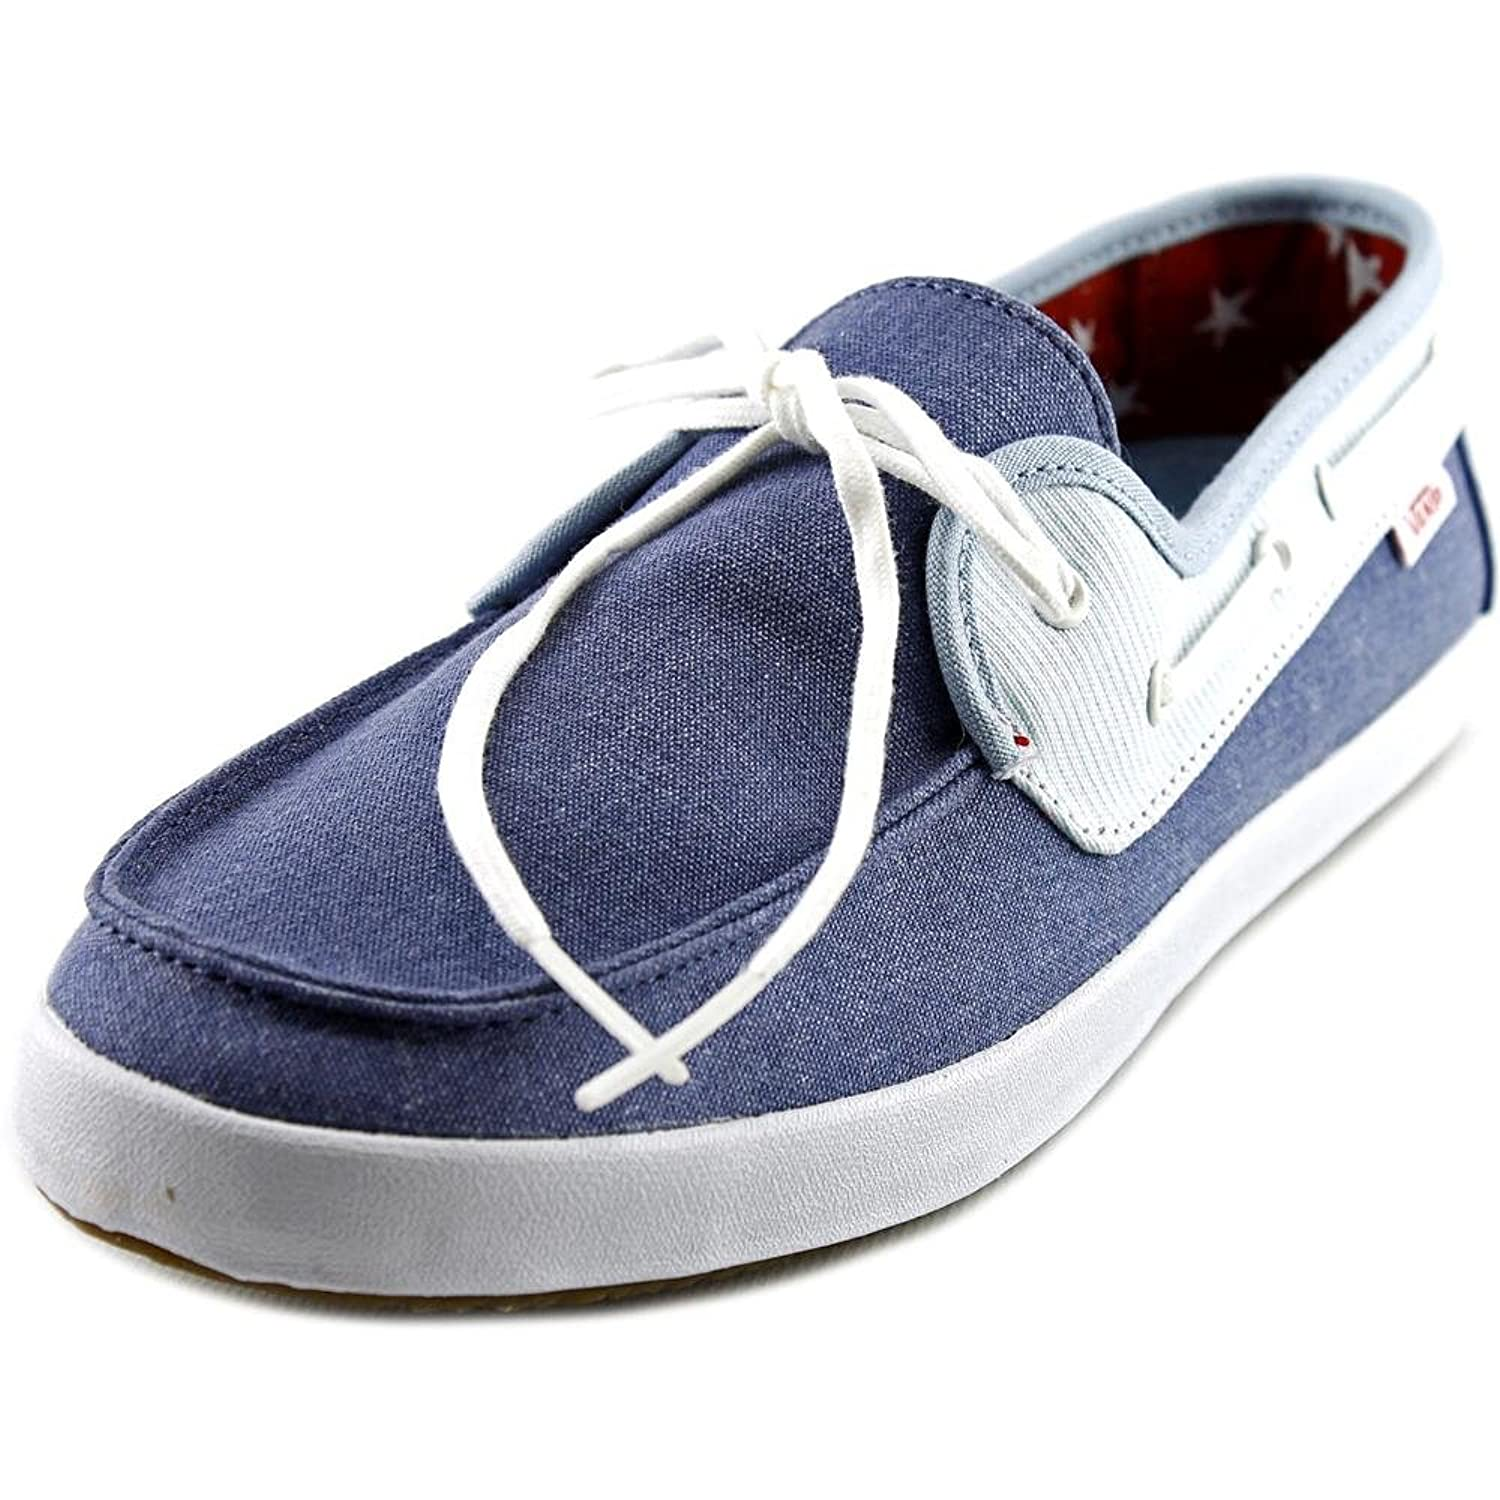 Vans Chauffette Round Toe Canvas Loafer